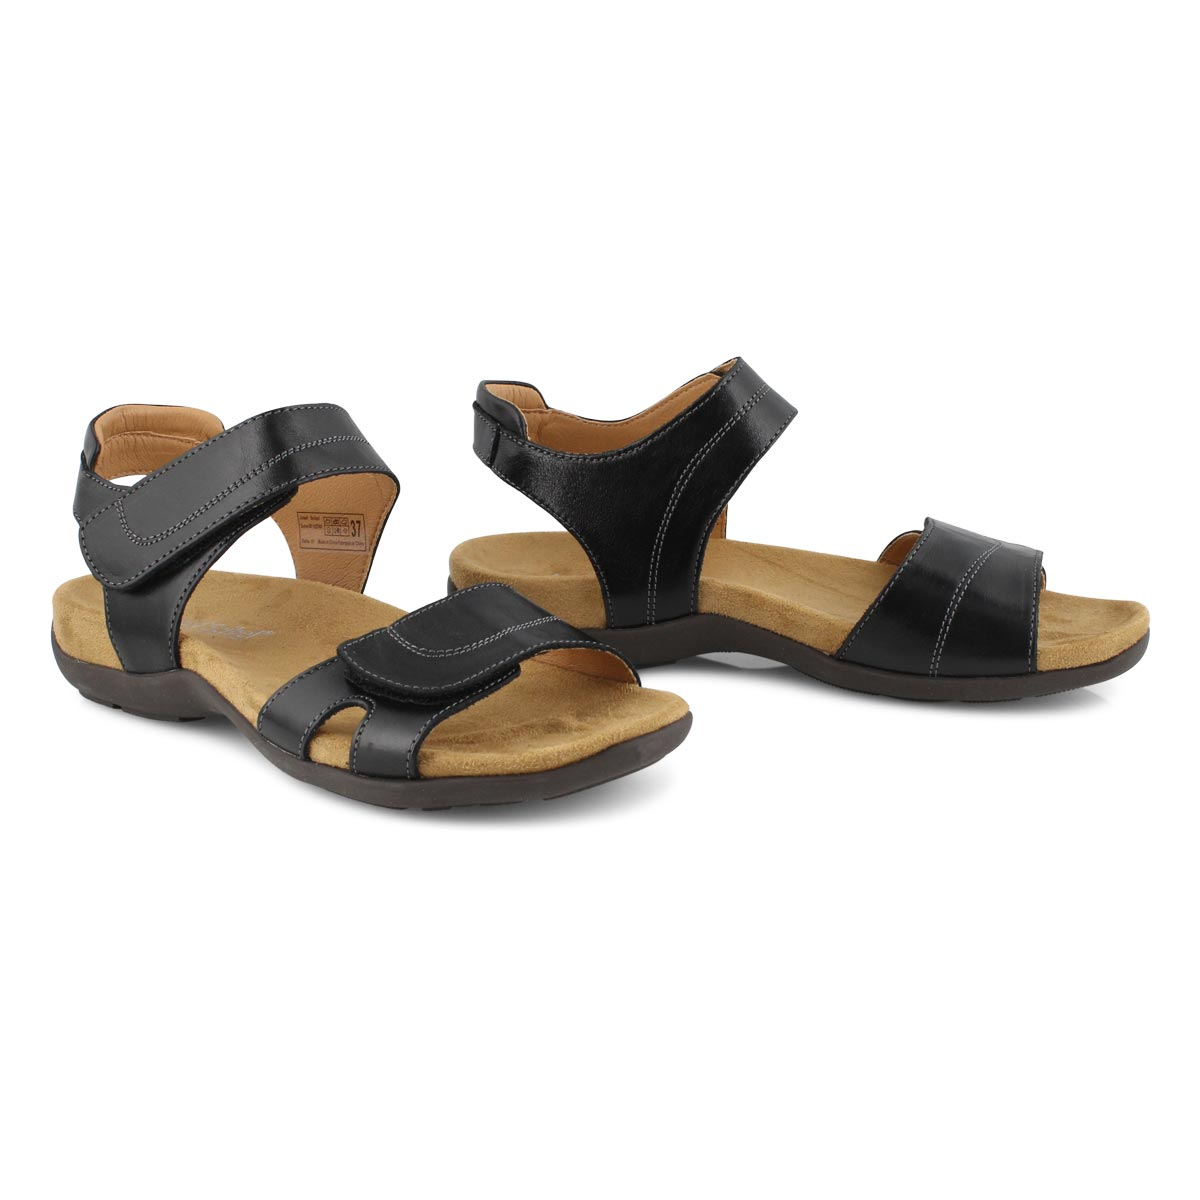 Lds Dalia 01 black casual sandal